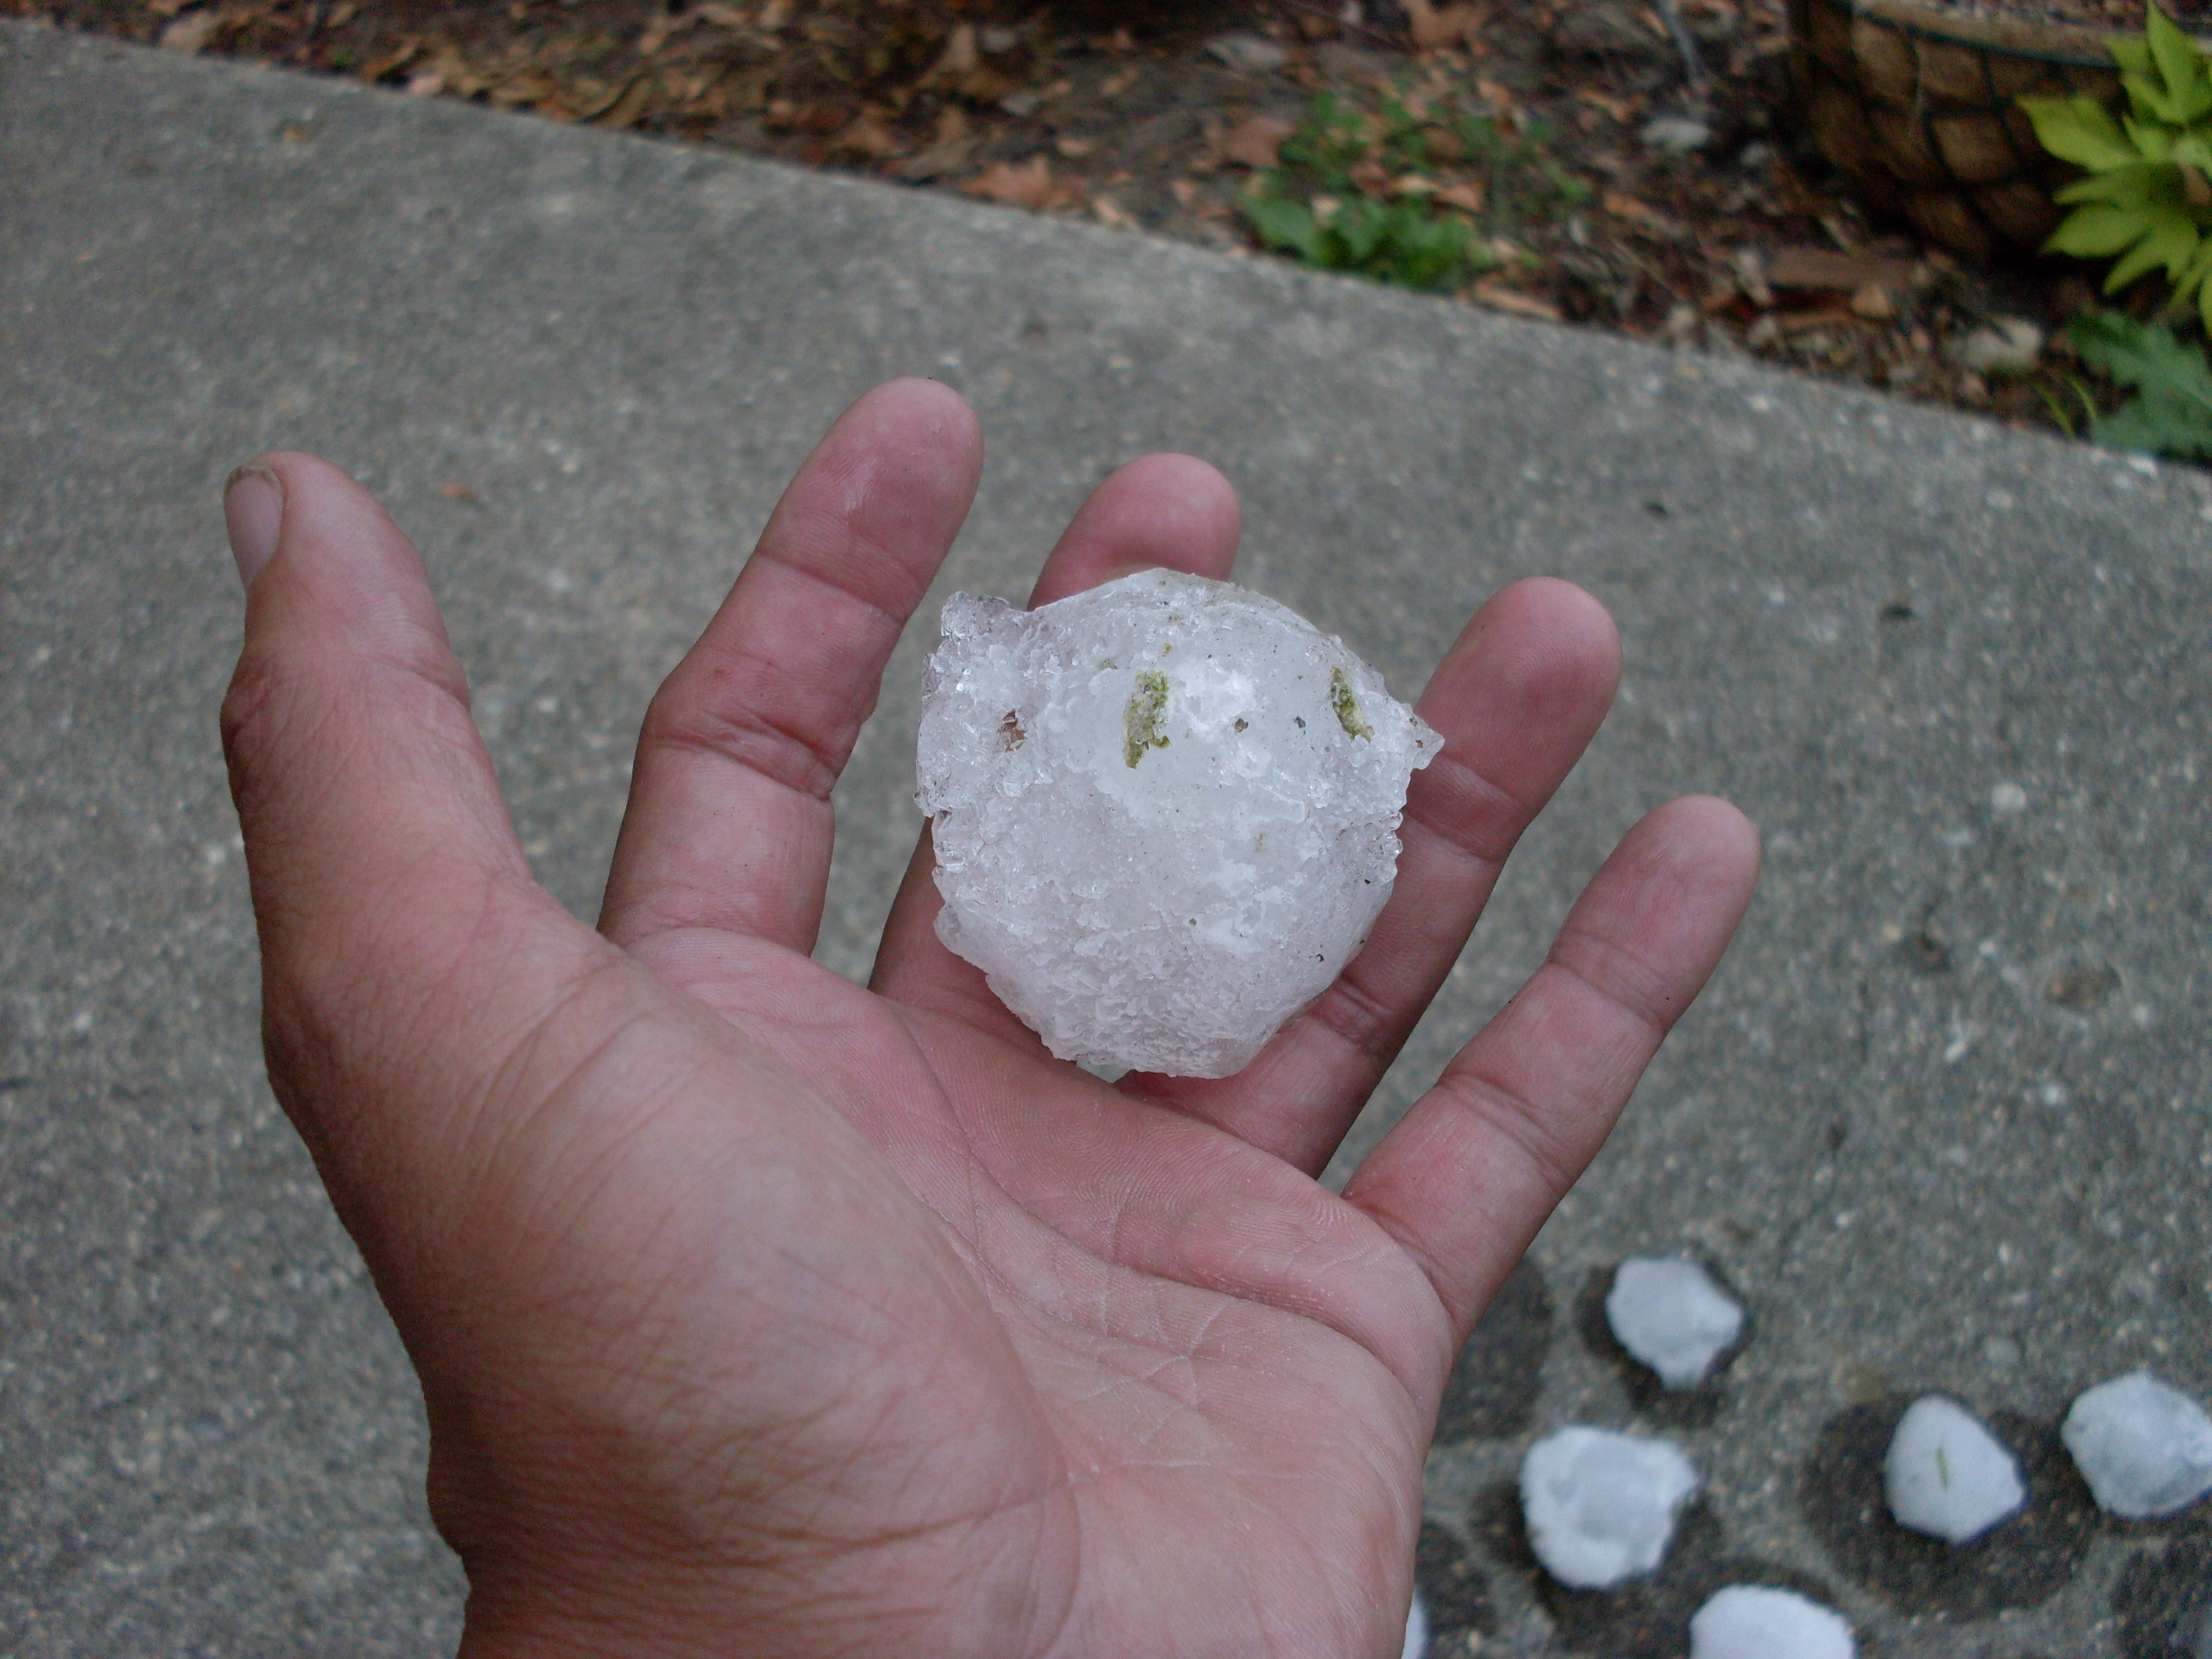 Golf Ball-size Hail Stone